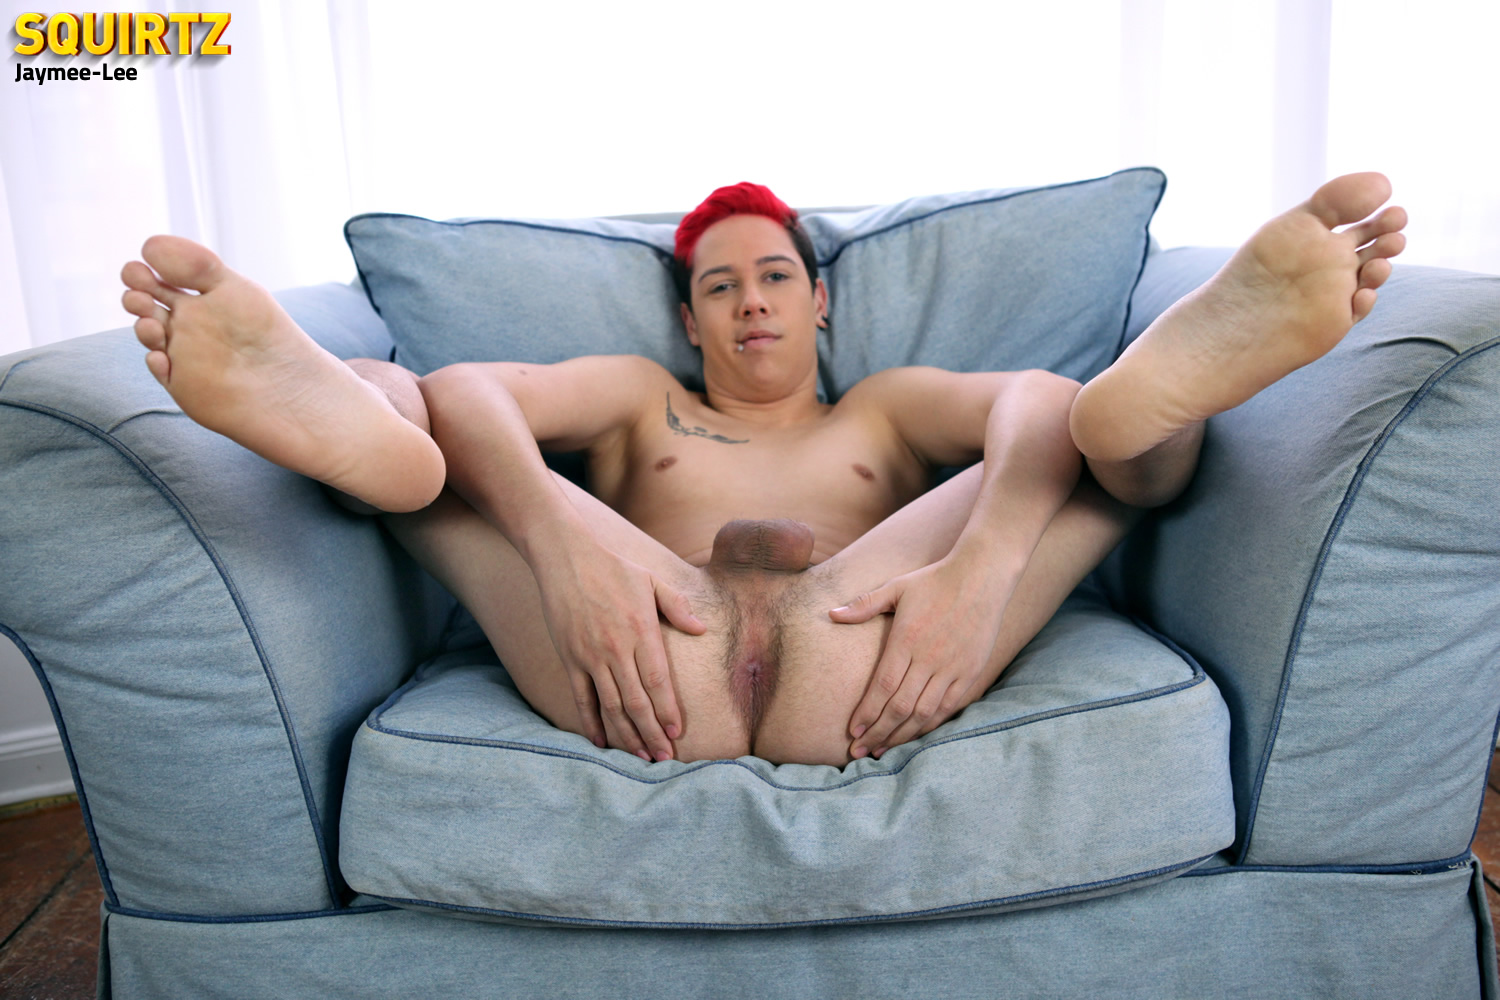 Squirtz-Jaymee-Lee-Twink-Jerking-Off-Massive-Uncut-Cock-Amateur-Gay-Porn-07 Amateur Florida Twink Jaymee-Lee Jerking His Massive Uncut Cock